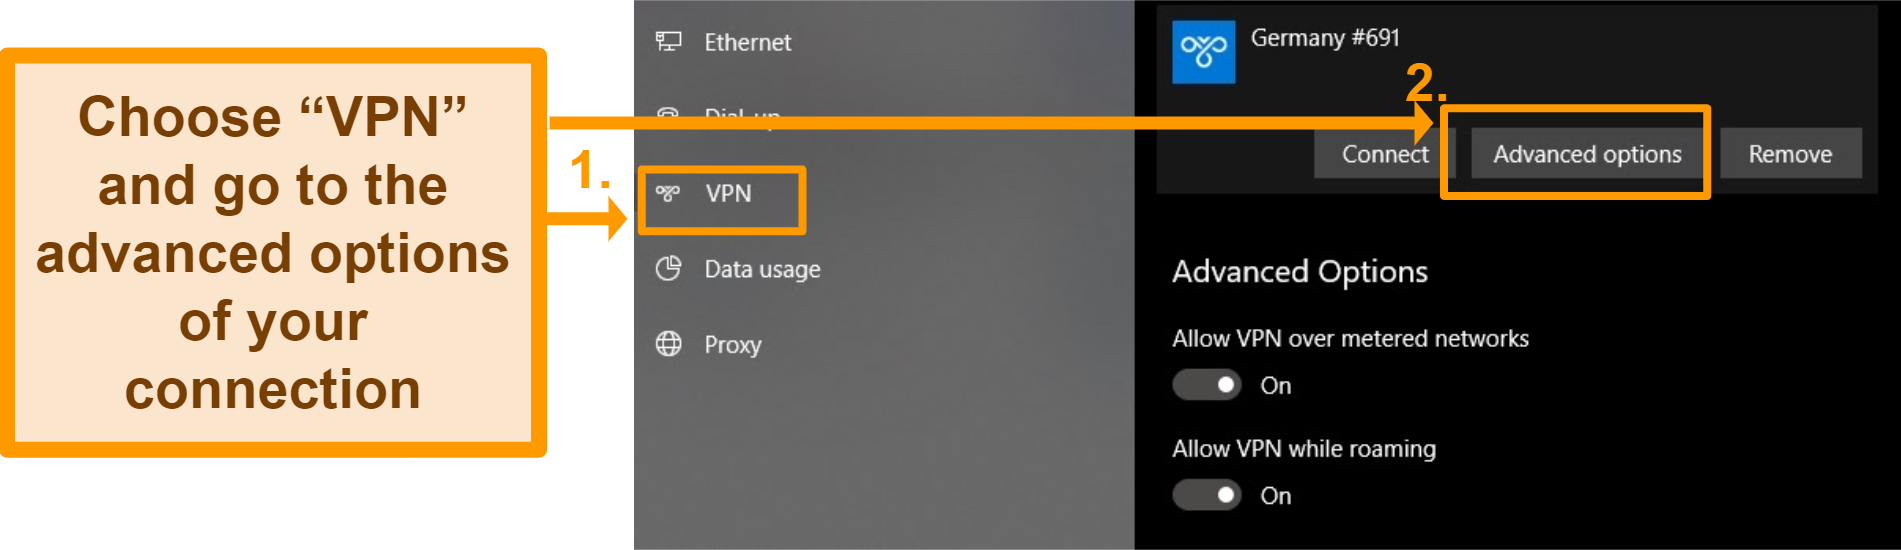 Screenshot of changing the advanced options for a manual VPN configuration in the Windows VPN settings